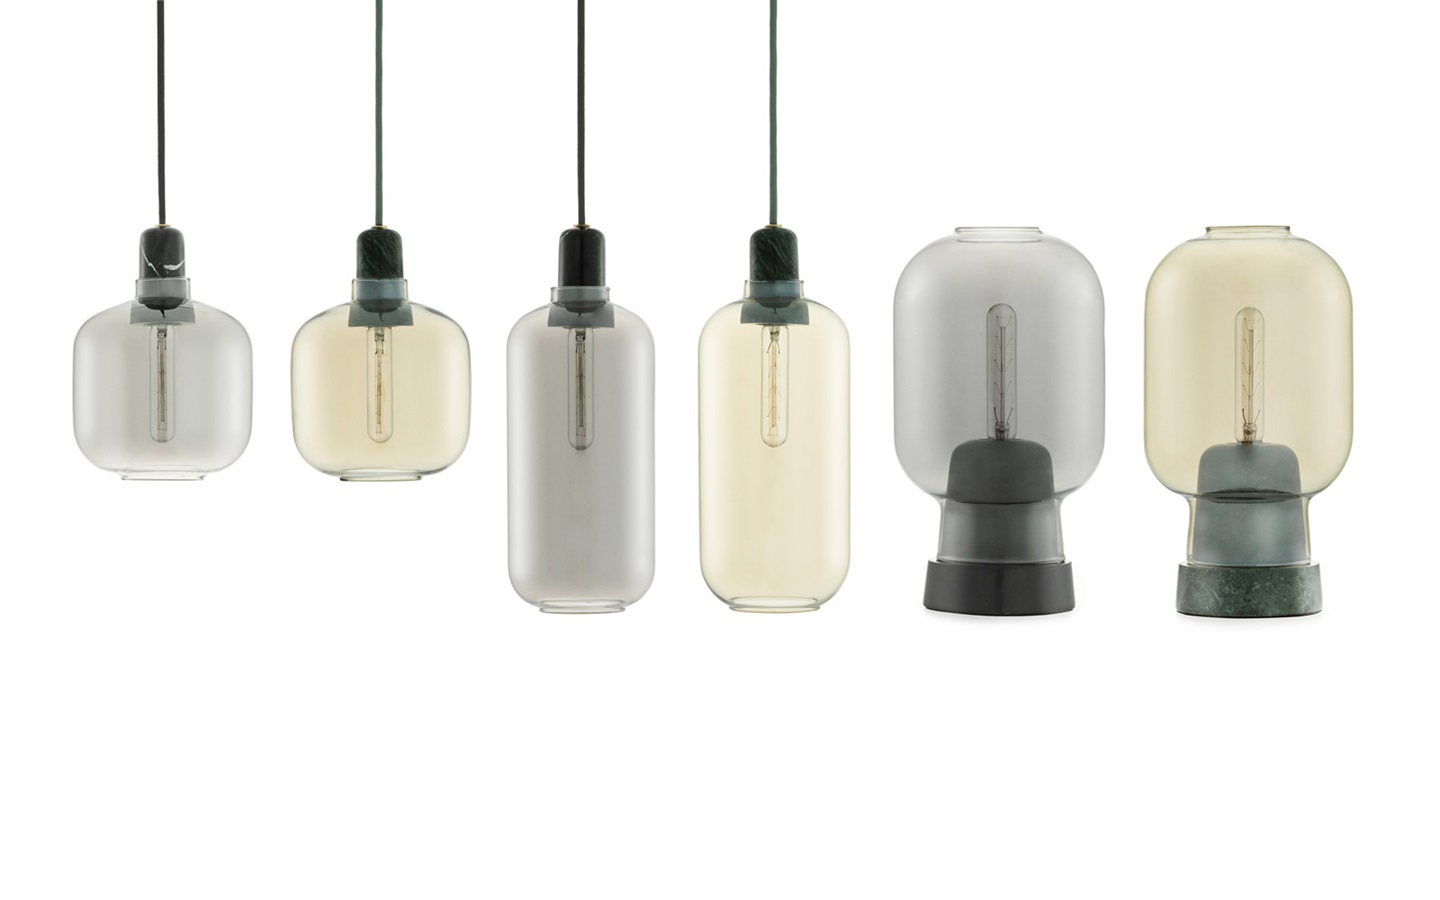 Small glass table lamps - Undefined